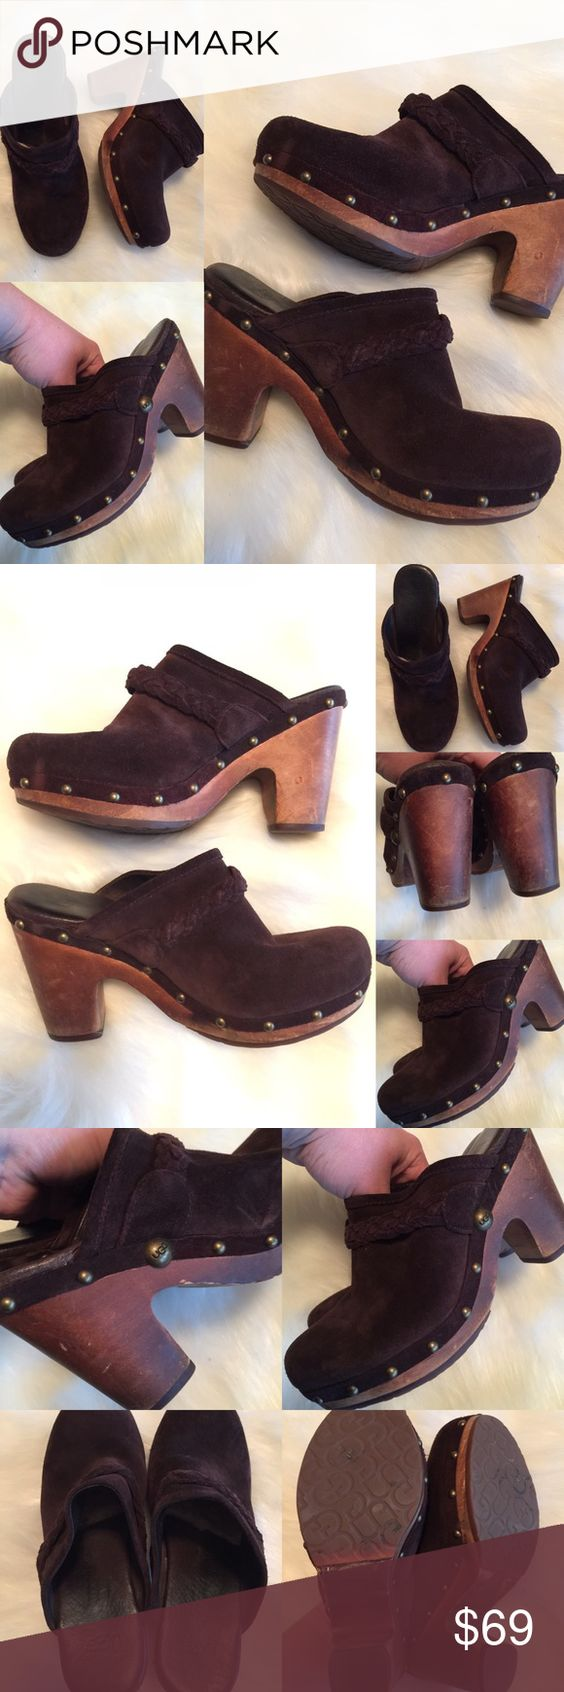 UGGS ❤️ Leather Studded Mule Clogs, Sheepskin Sz 7 Beautiful clogs!  Nicks or sings from general wear as pictured, but overall GREAT condition! ❤️❤️❤️ (A5X20216FTC) Original price is an estimation. UGG Shoes Mules & Clogs